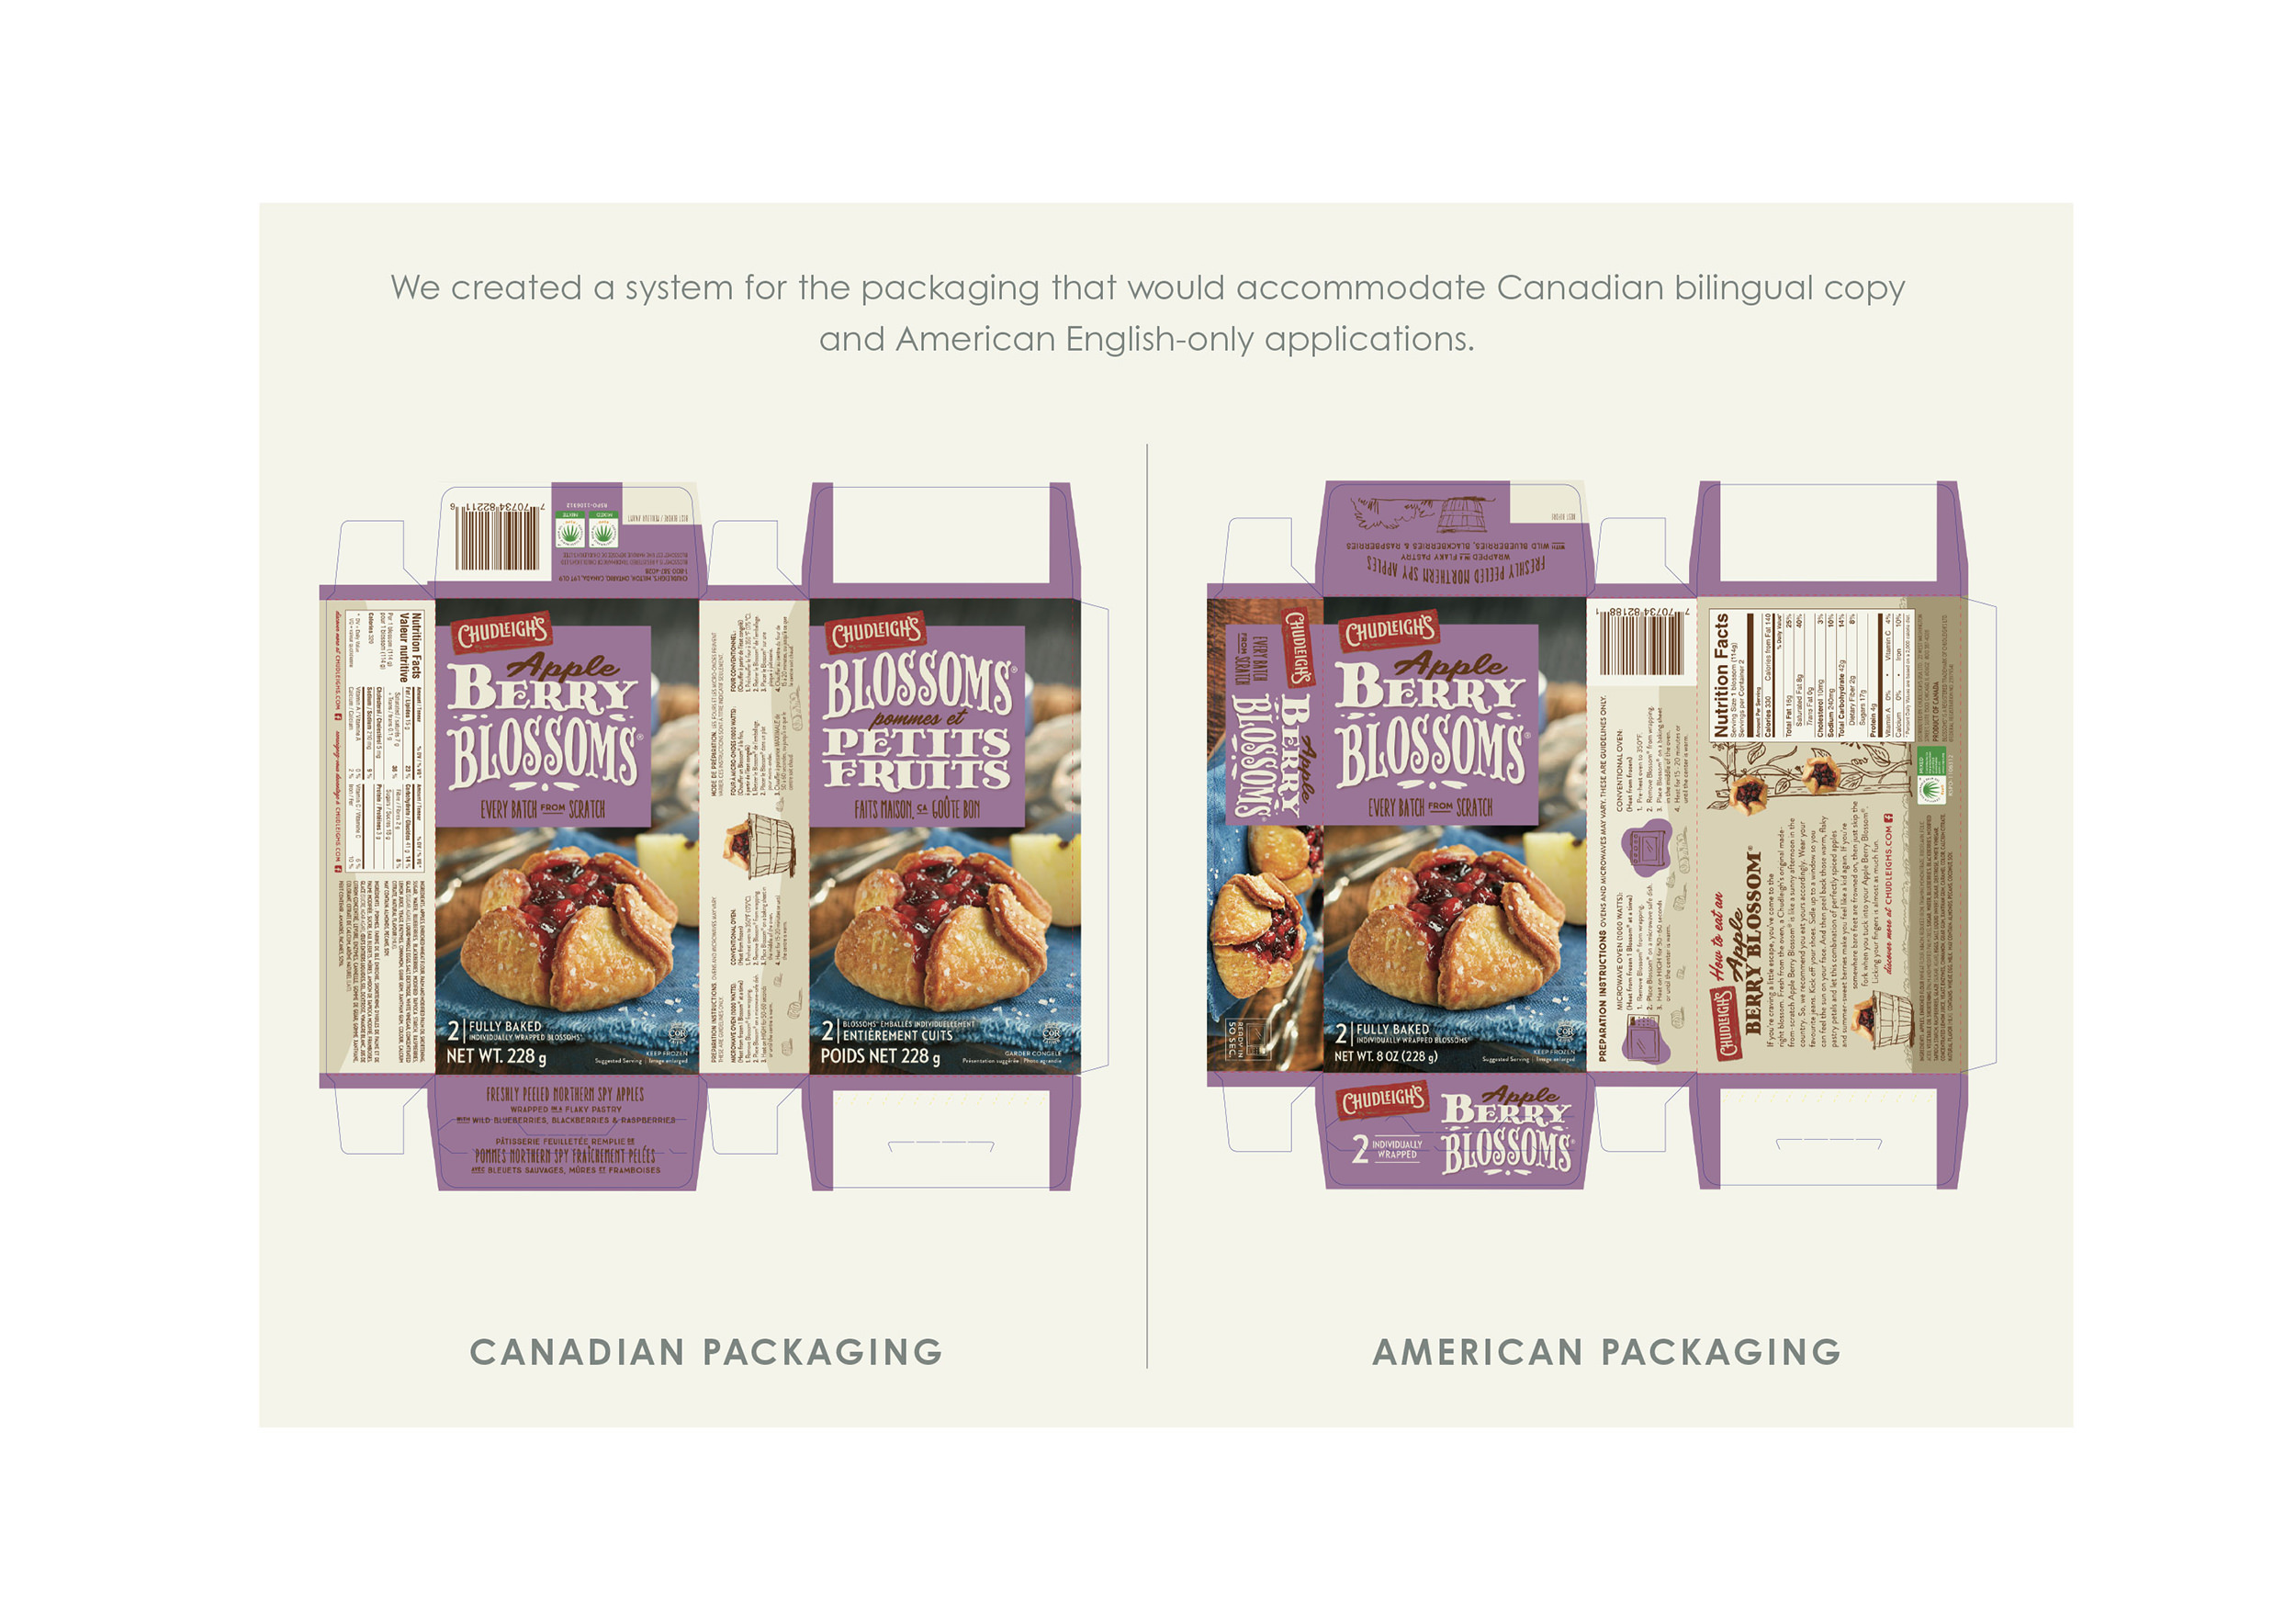 Chad Roberts Design Ltd. Chudleigh's Blossoms Bilingual US Packaging Layout Design